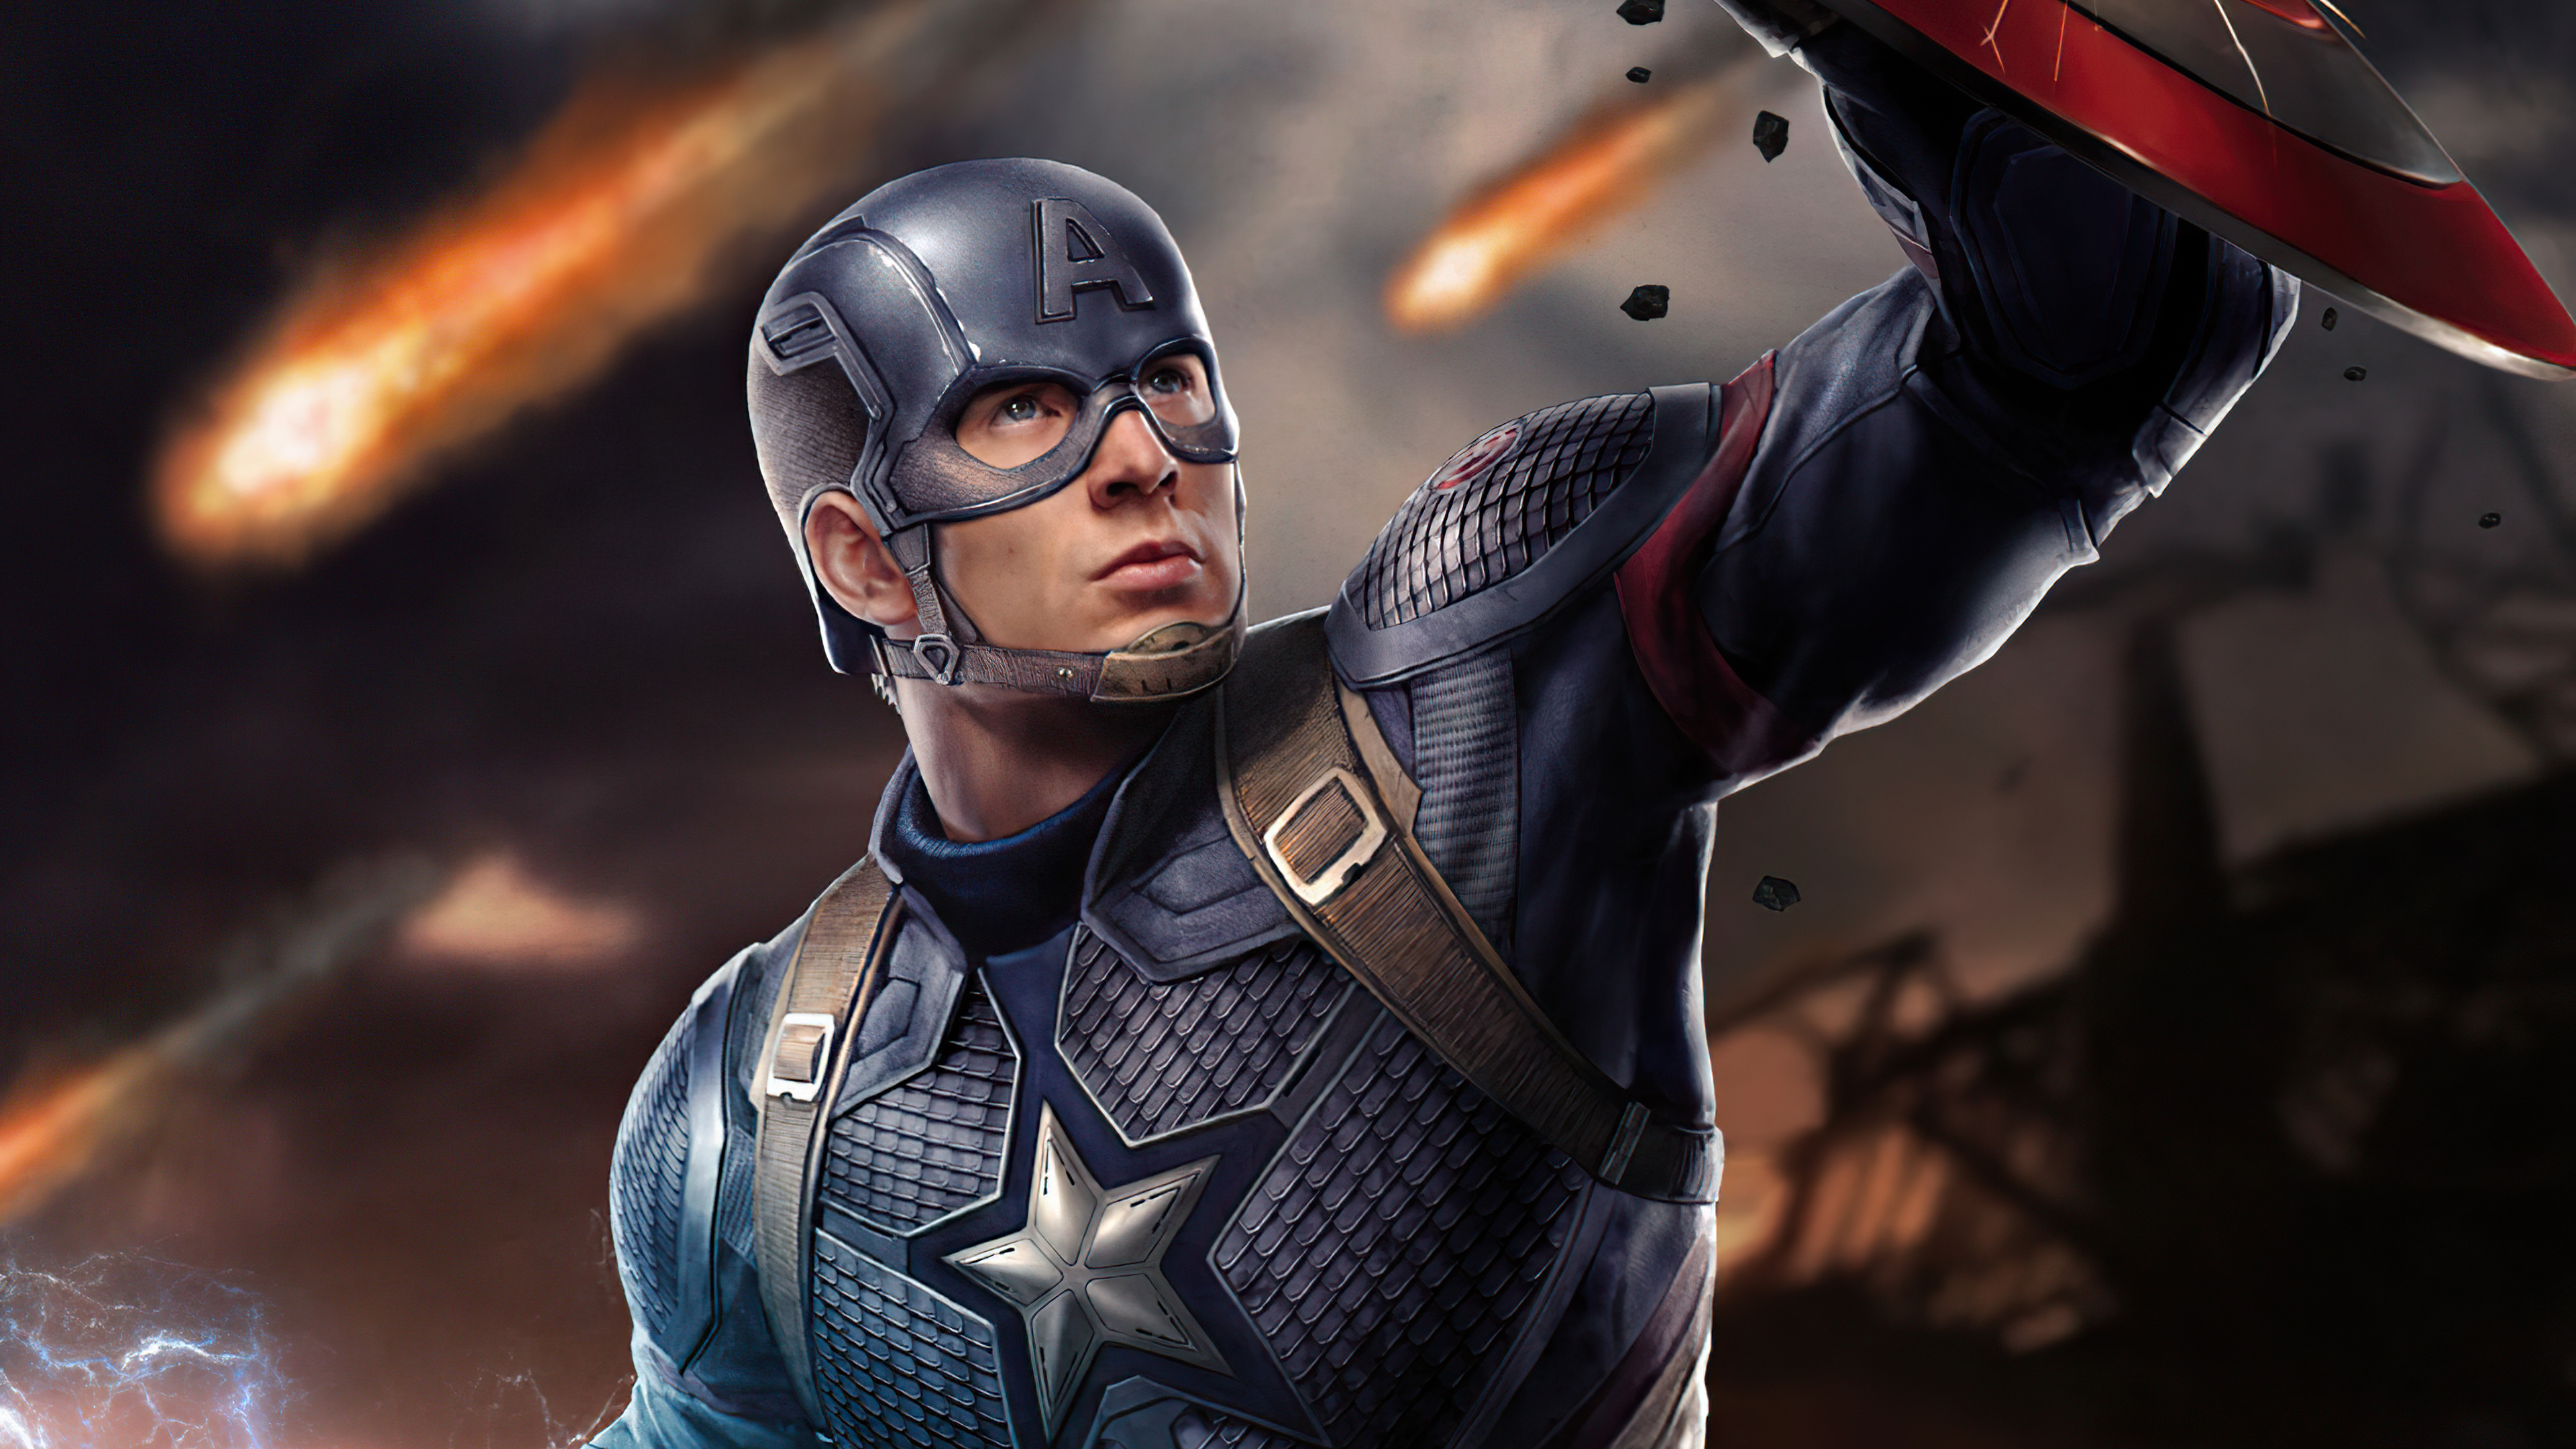 captain america shield and thor hammer 4k 1619215238 - Captain America Shield And Thor Hammer 4k - Captain America Shield And Thor Hammer 4k wallpapers